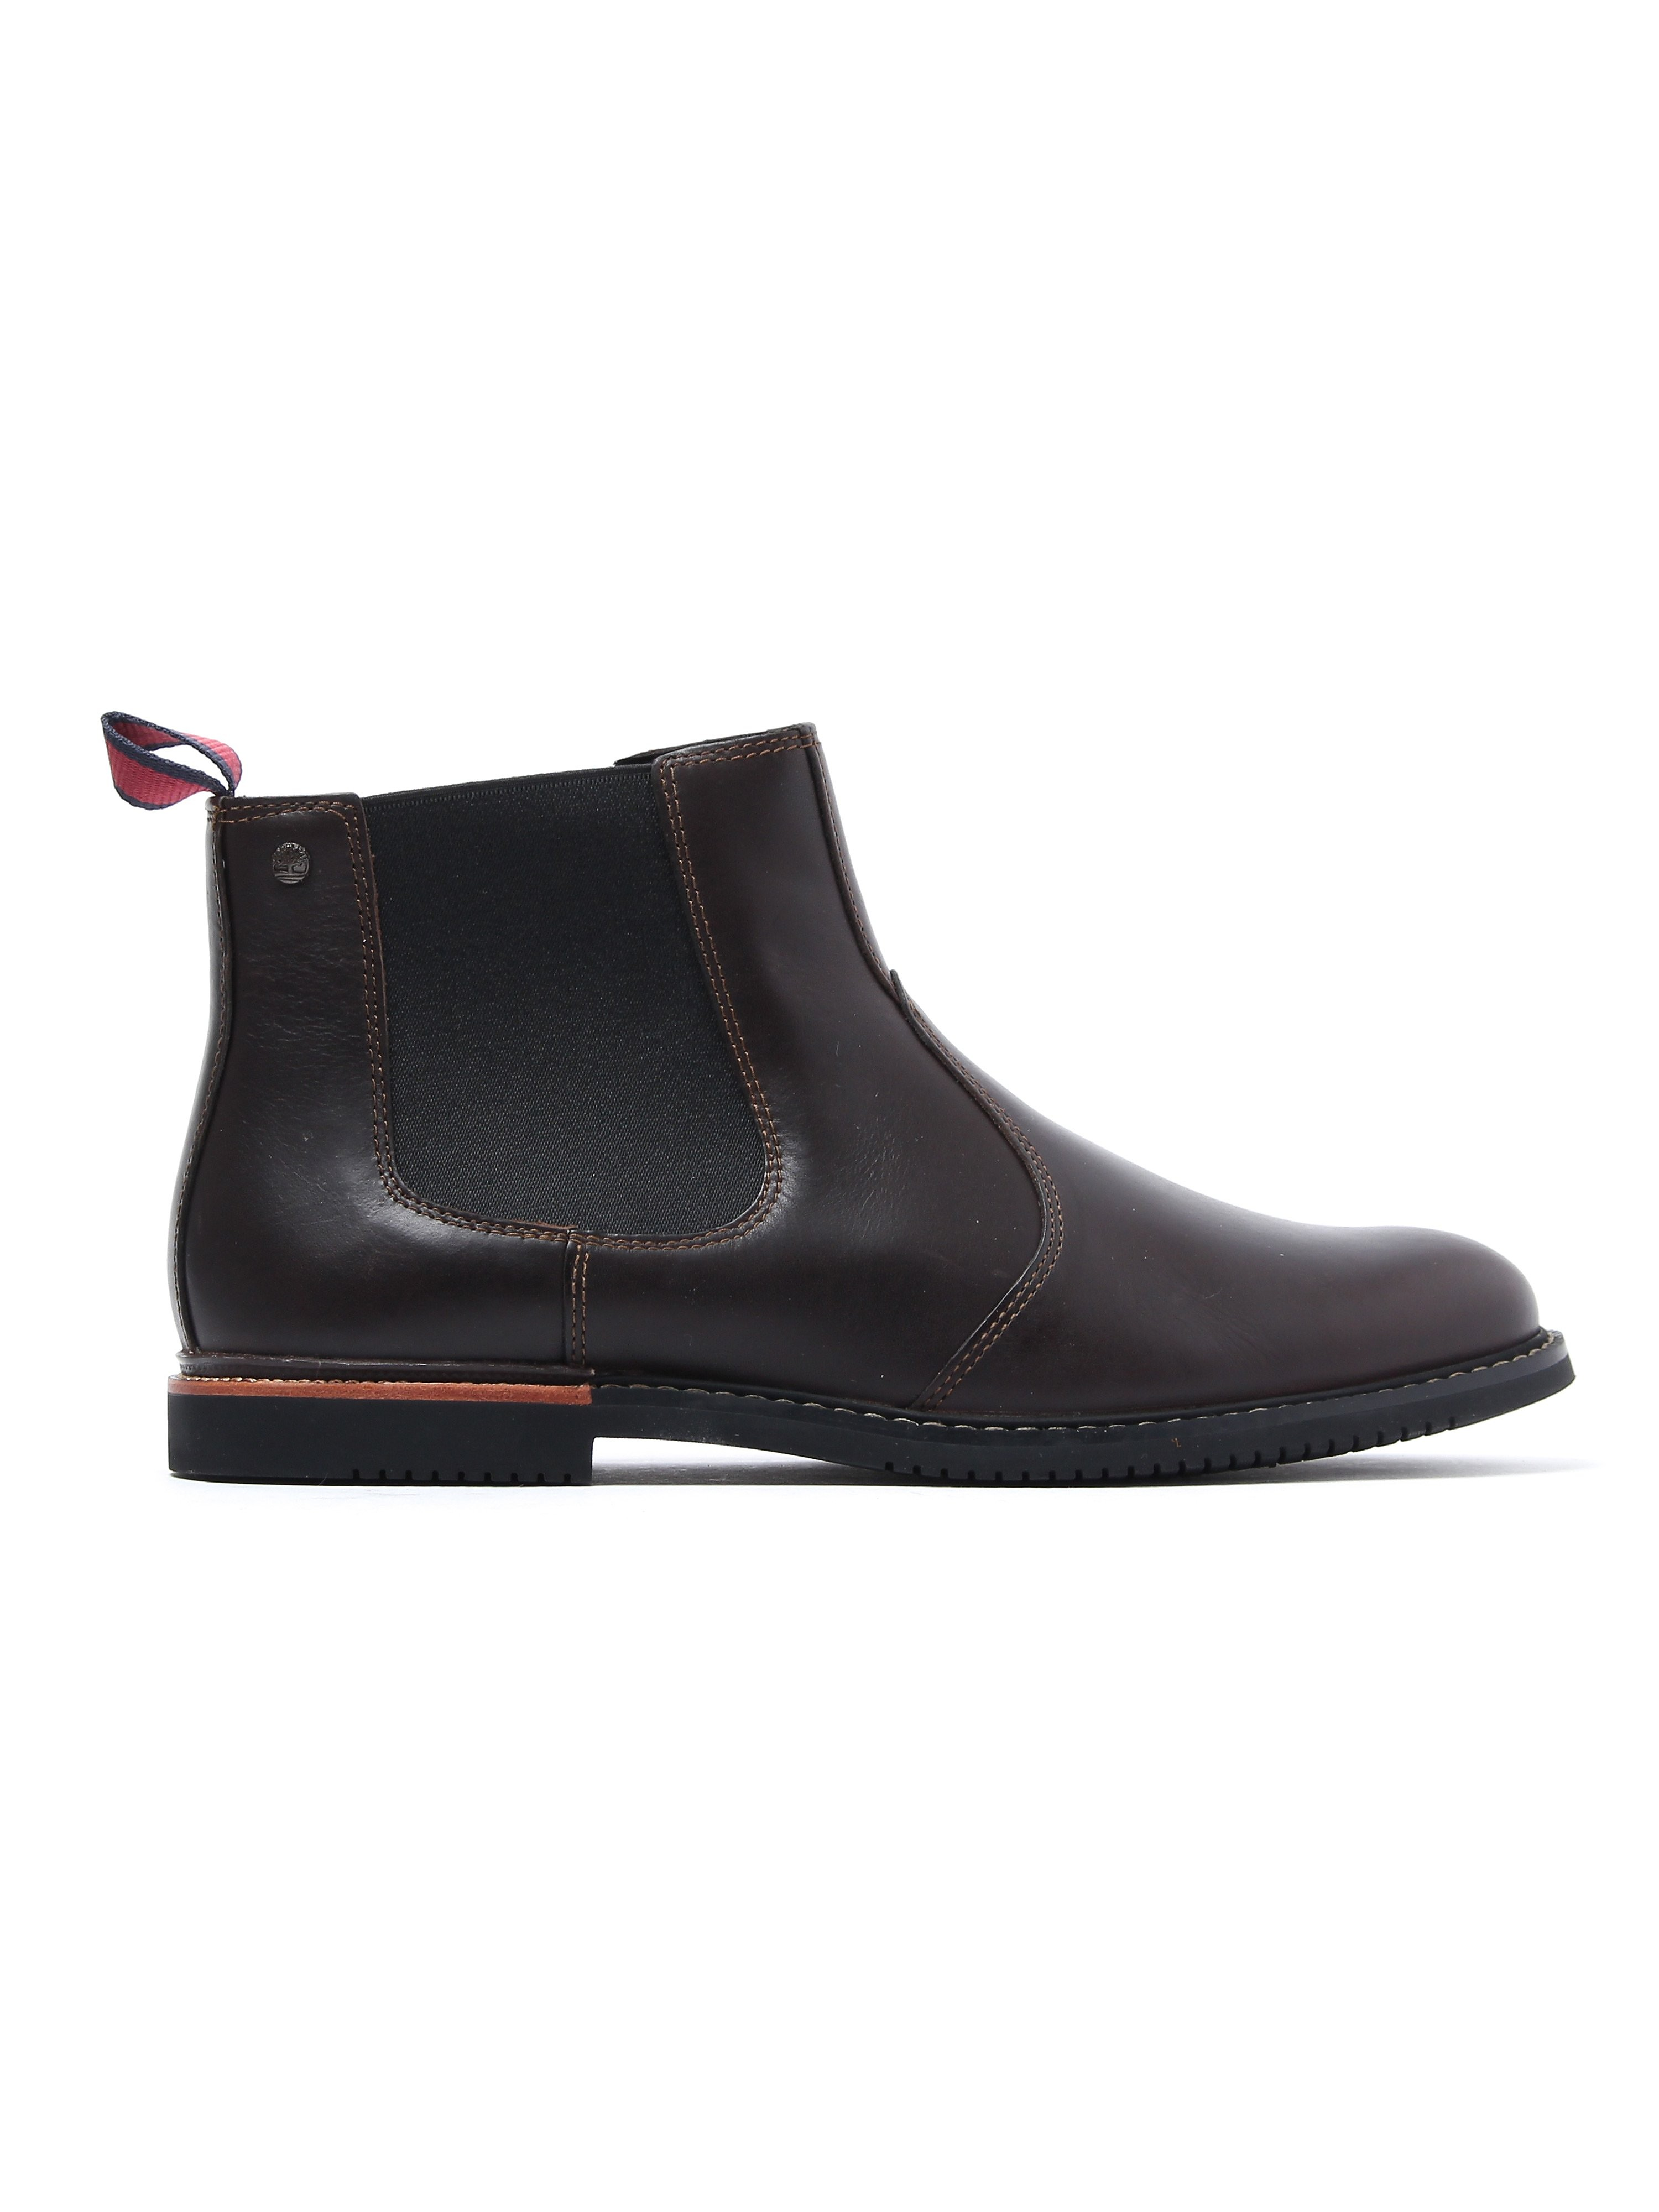 Timberland Men's Ekbrook Park Chelsea Boots - Brown Leather